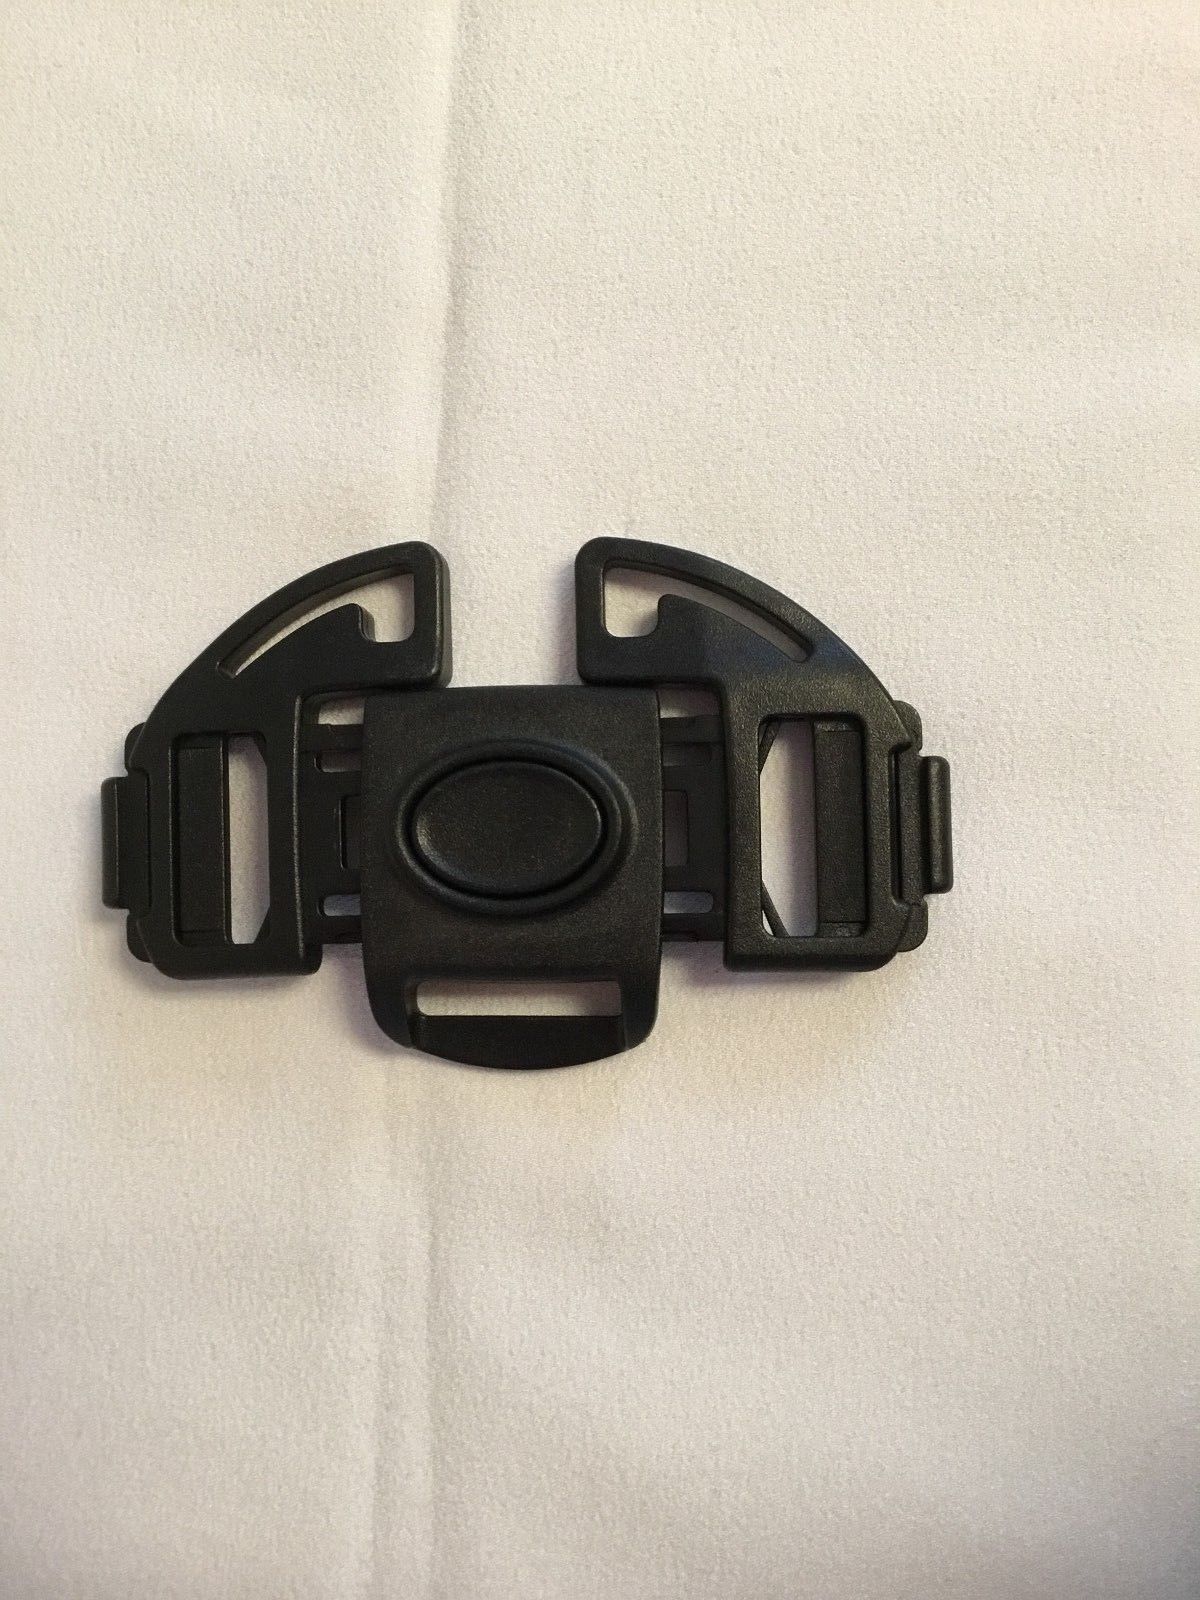 Black Buckle Clip Safety Harness Replacement Part for Baby, Toddler, Child Strollers, Bassinets, Joggers, Buggies (Hauck) by Ponini